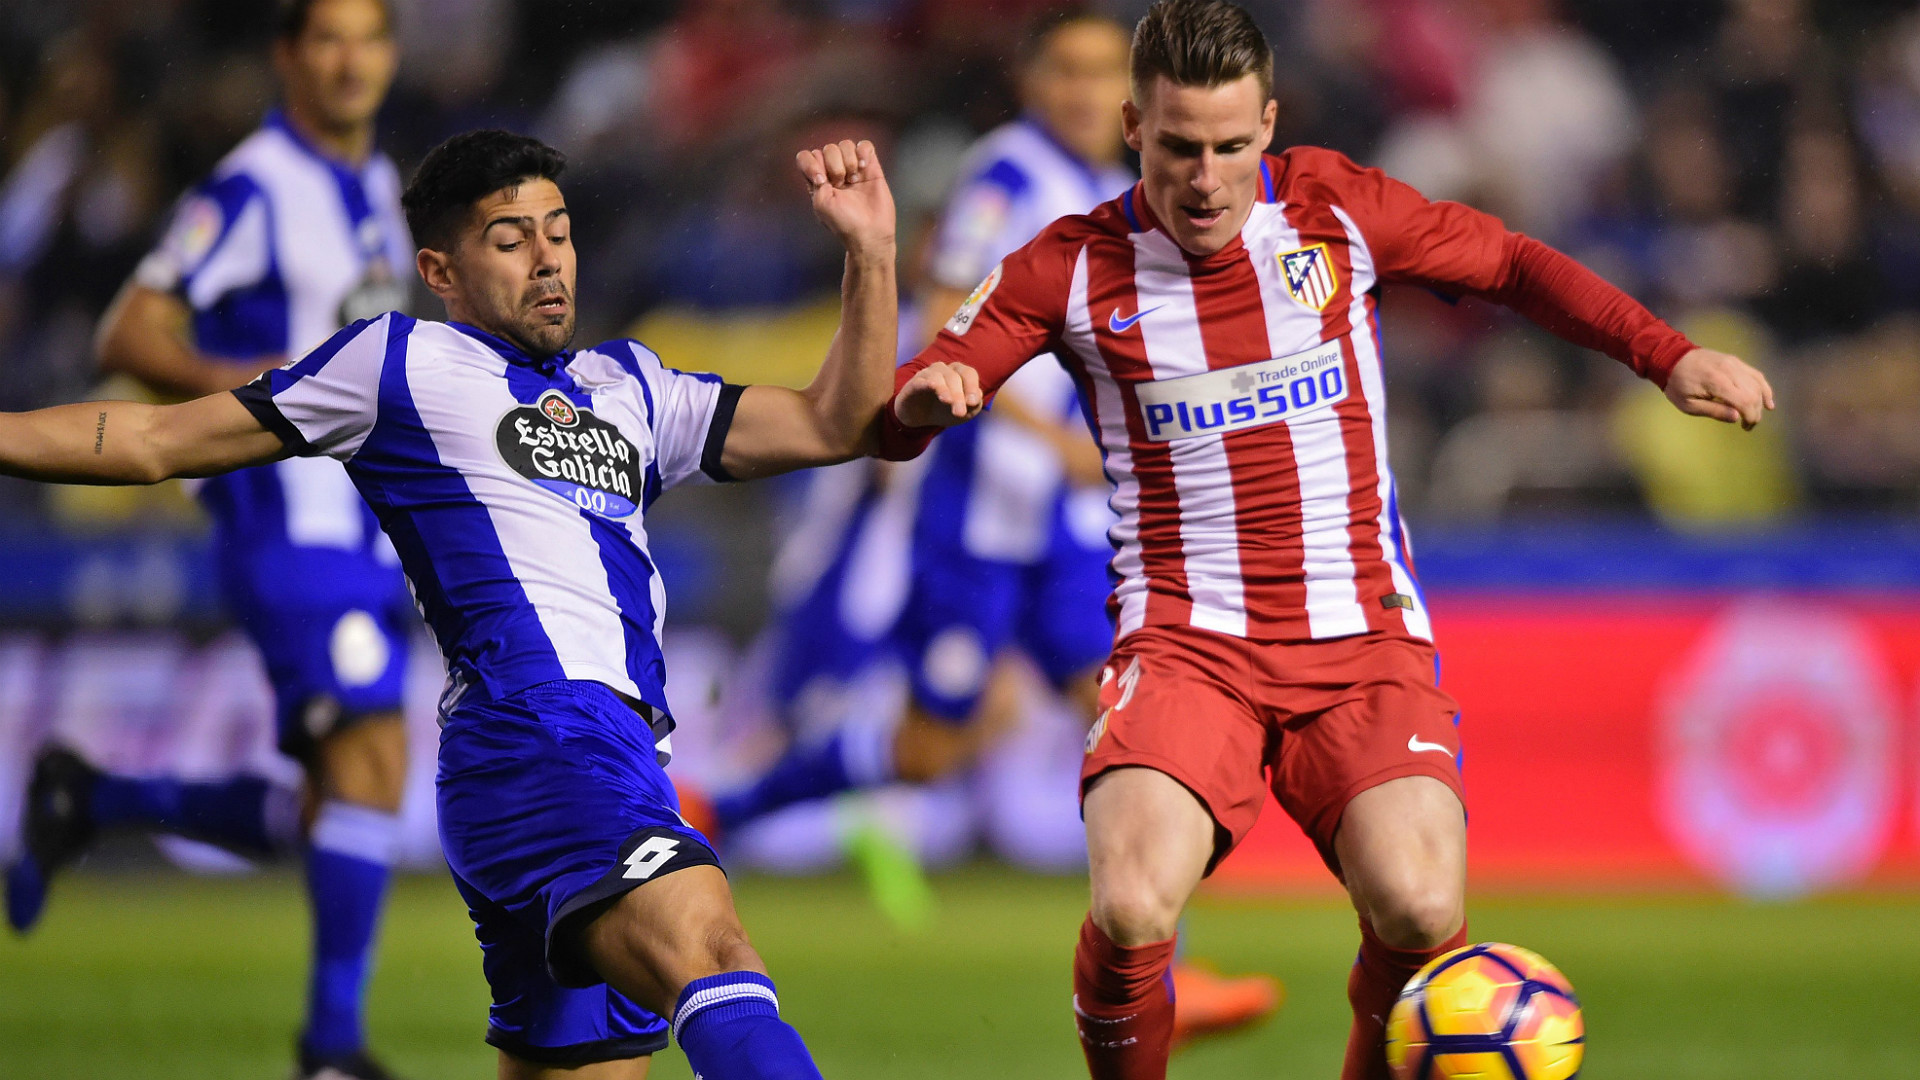 Fernando Torres suffers head injury during Atlético Madrid league match